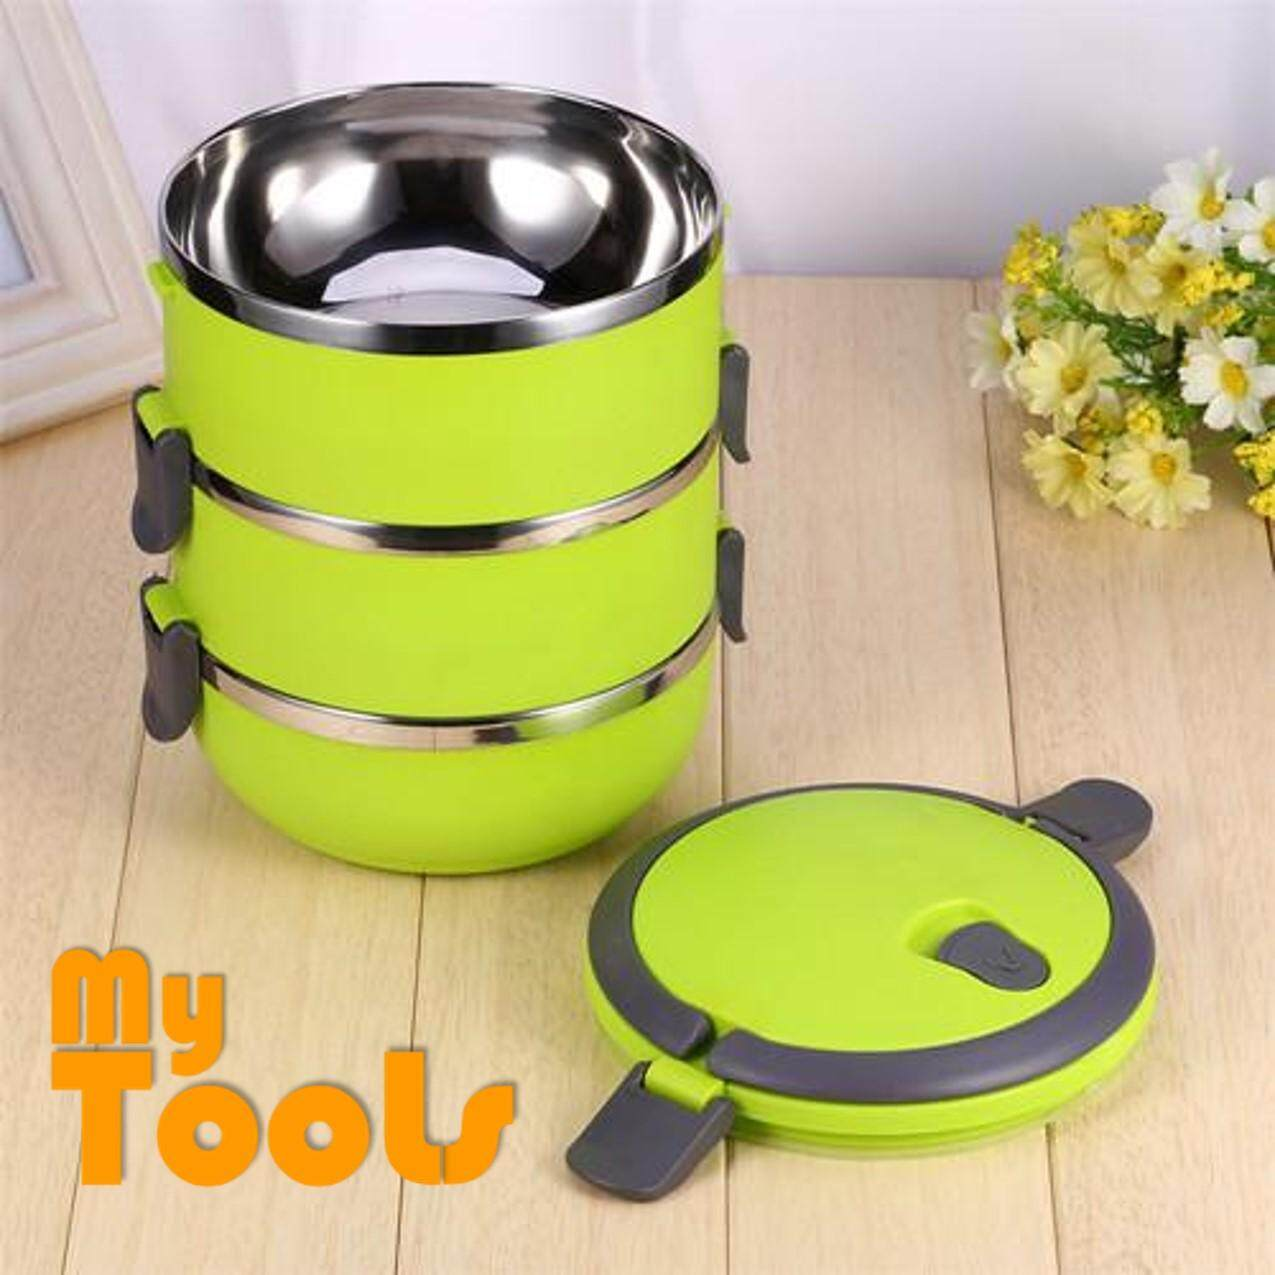 07180eb10 Mytools 3 Tiers Double Layer Stainless Steel Lunch Box With Sealing Valve